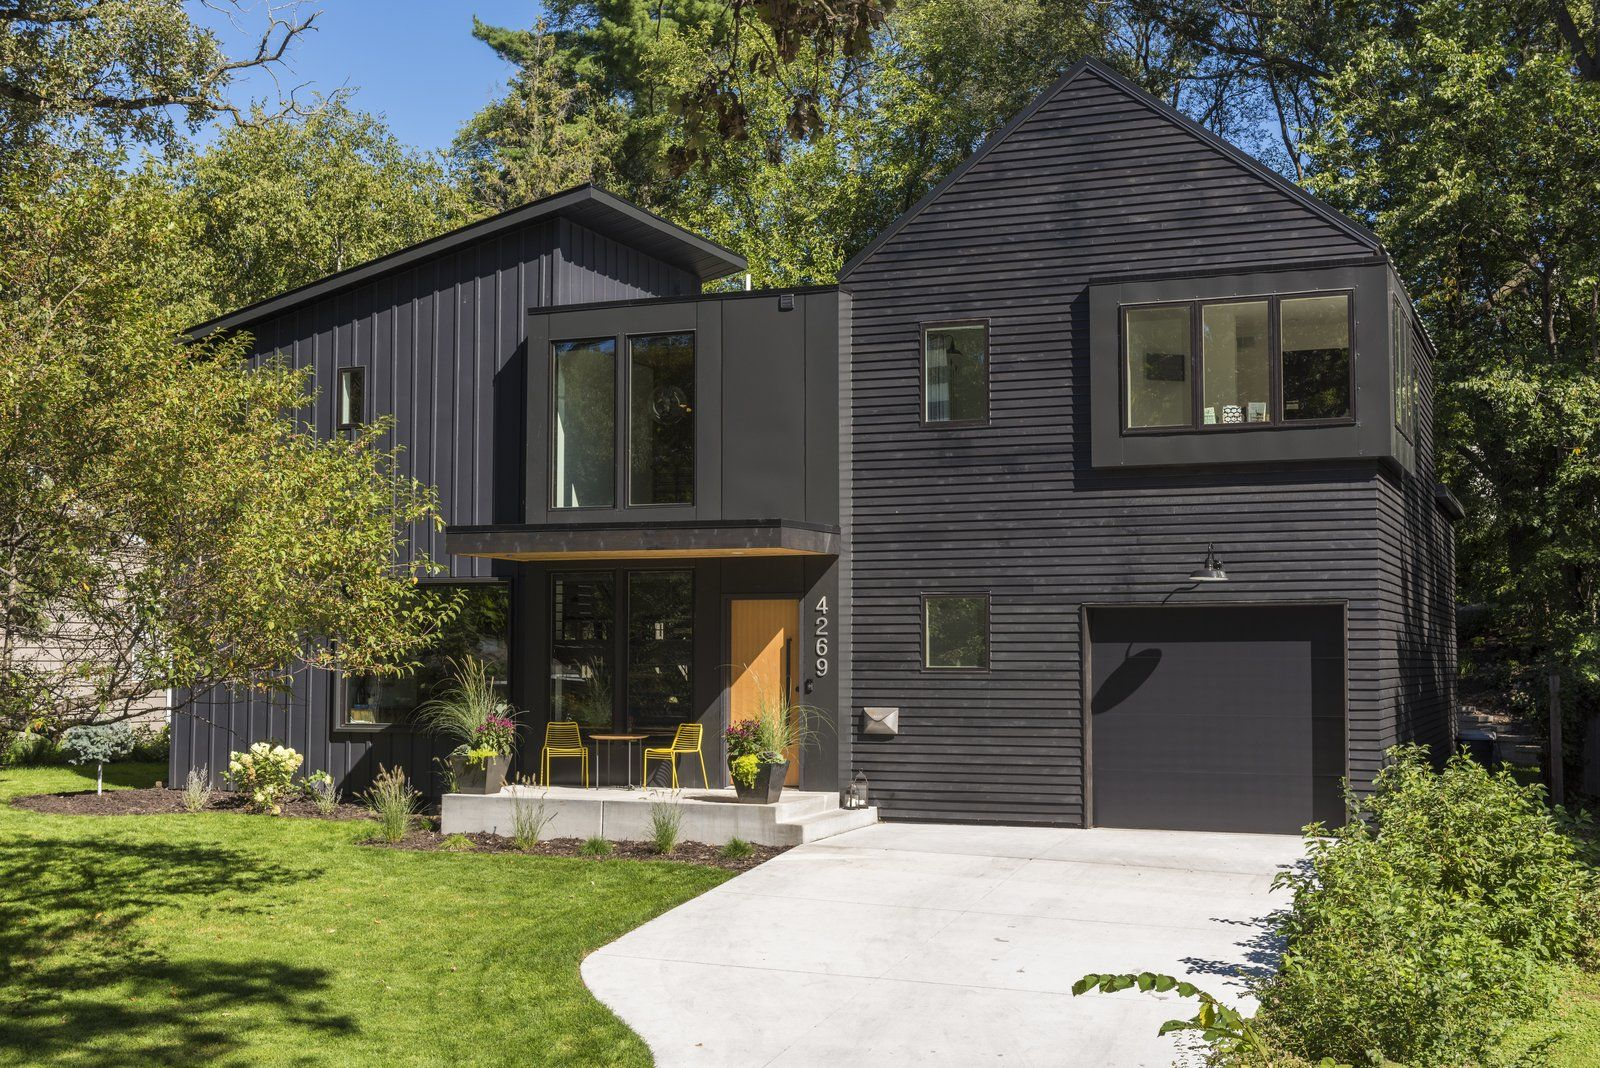 Modern home with Exterior, House, Shingles Roof Material